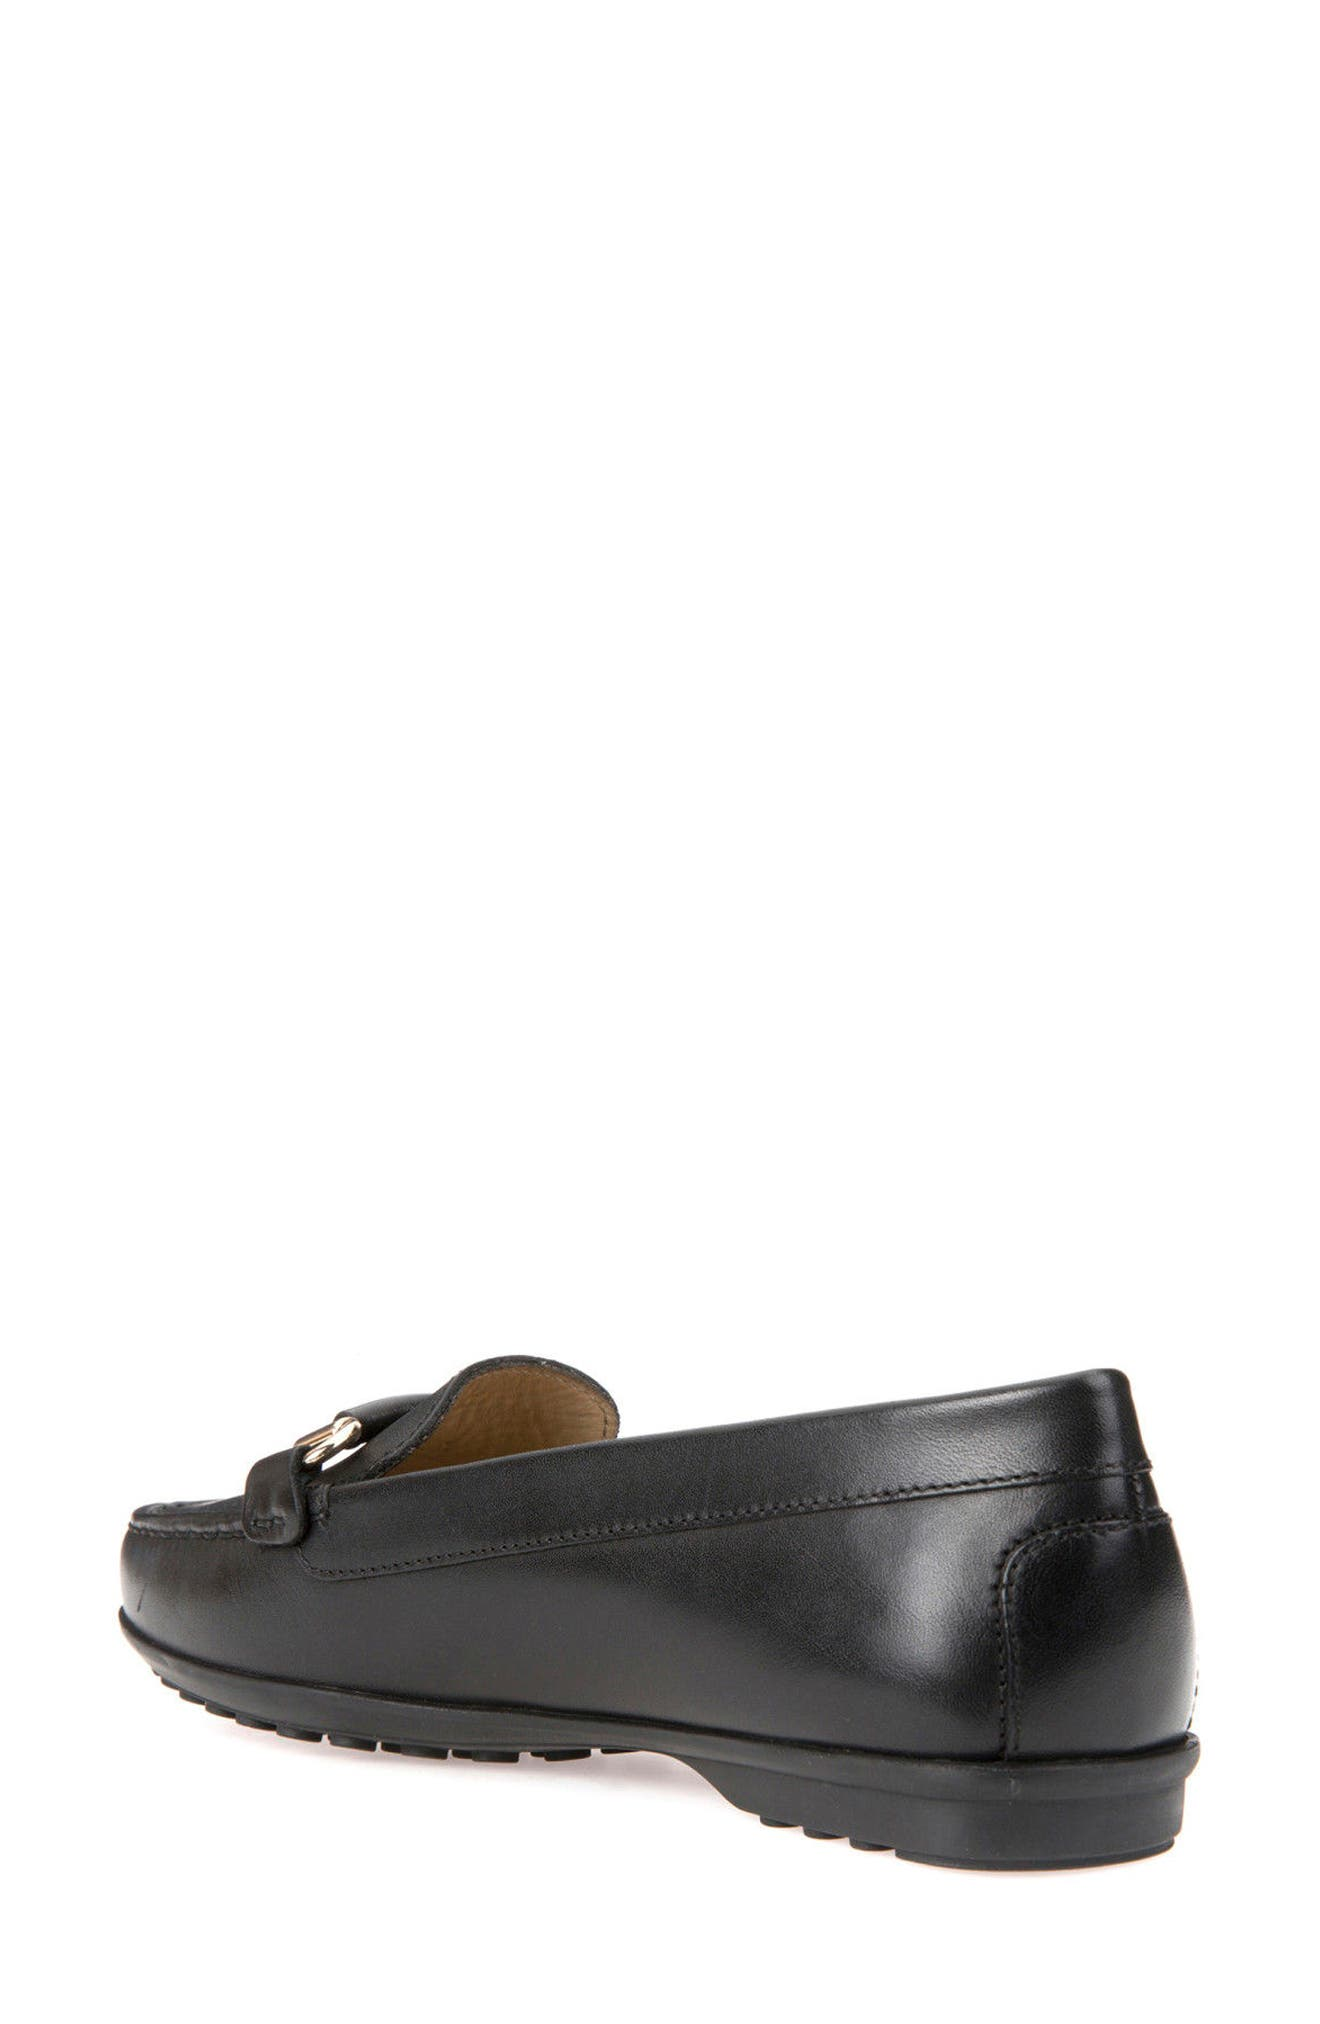 Elidia Buckle Loafer,                             Alternate thumbnail 2, color,                             001